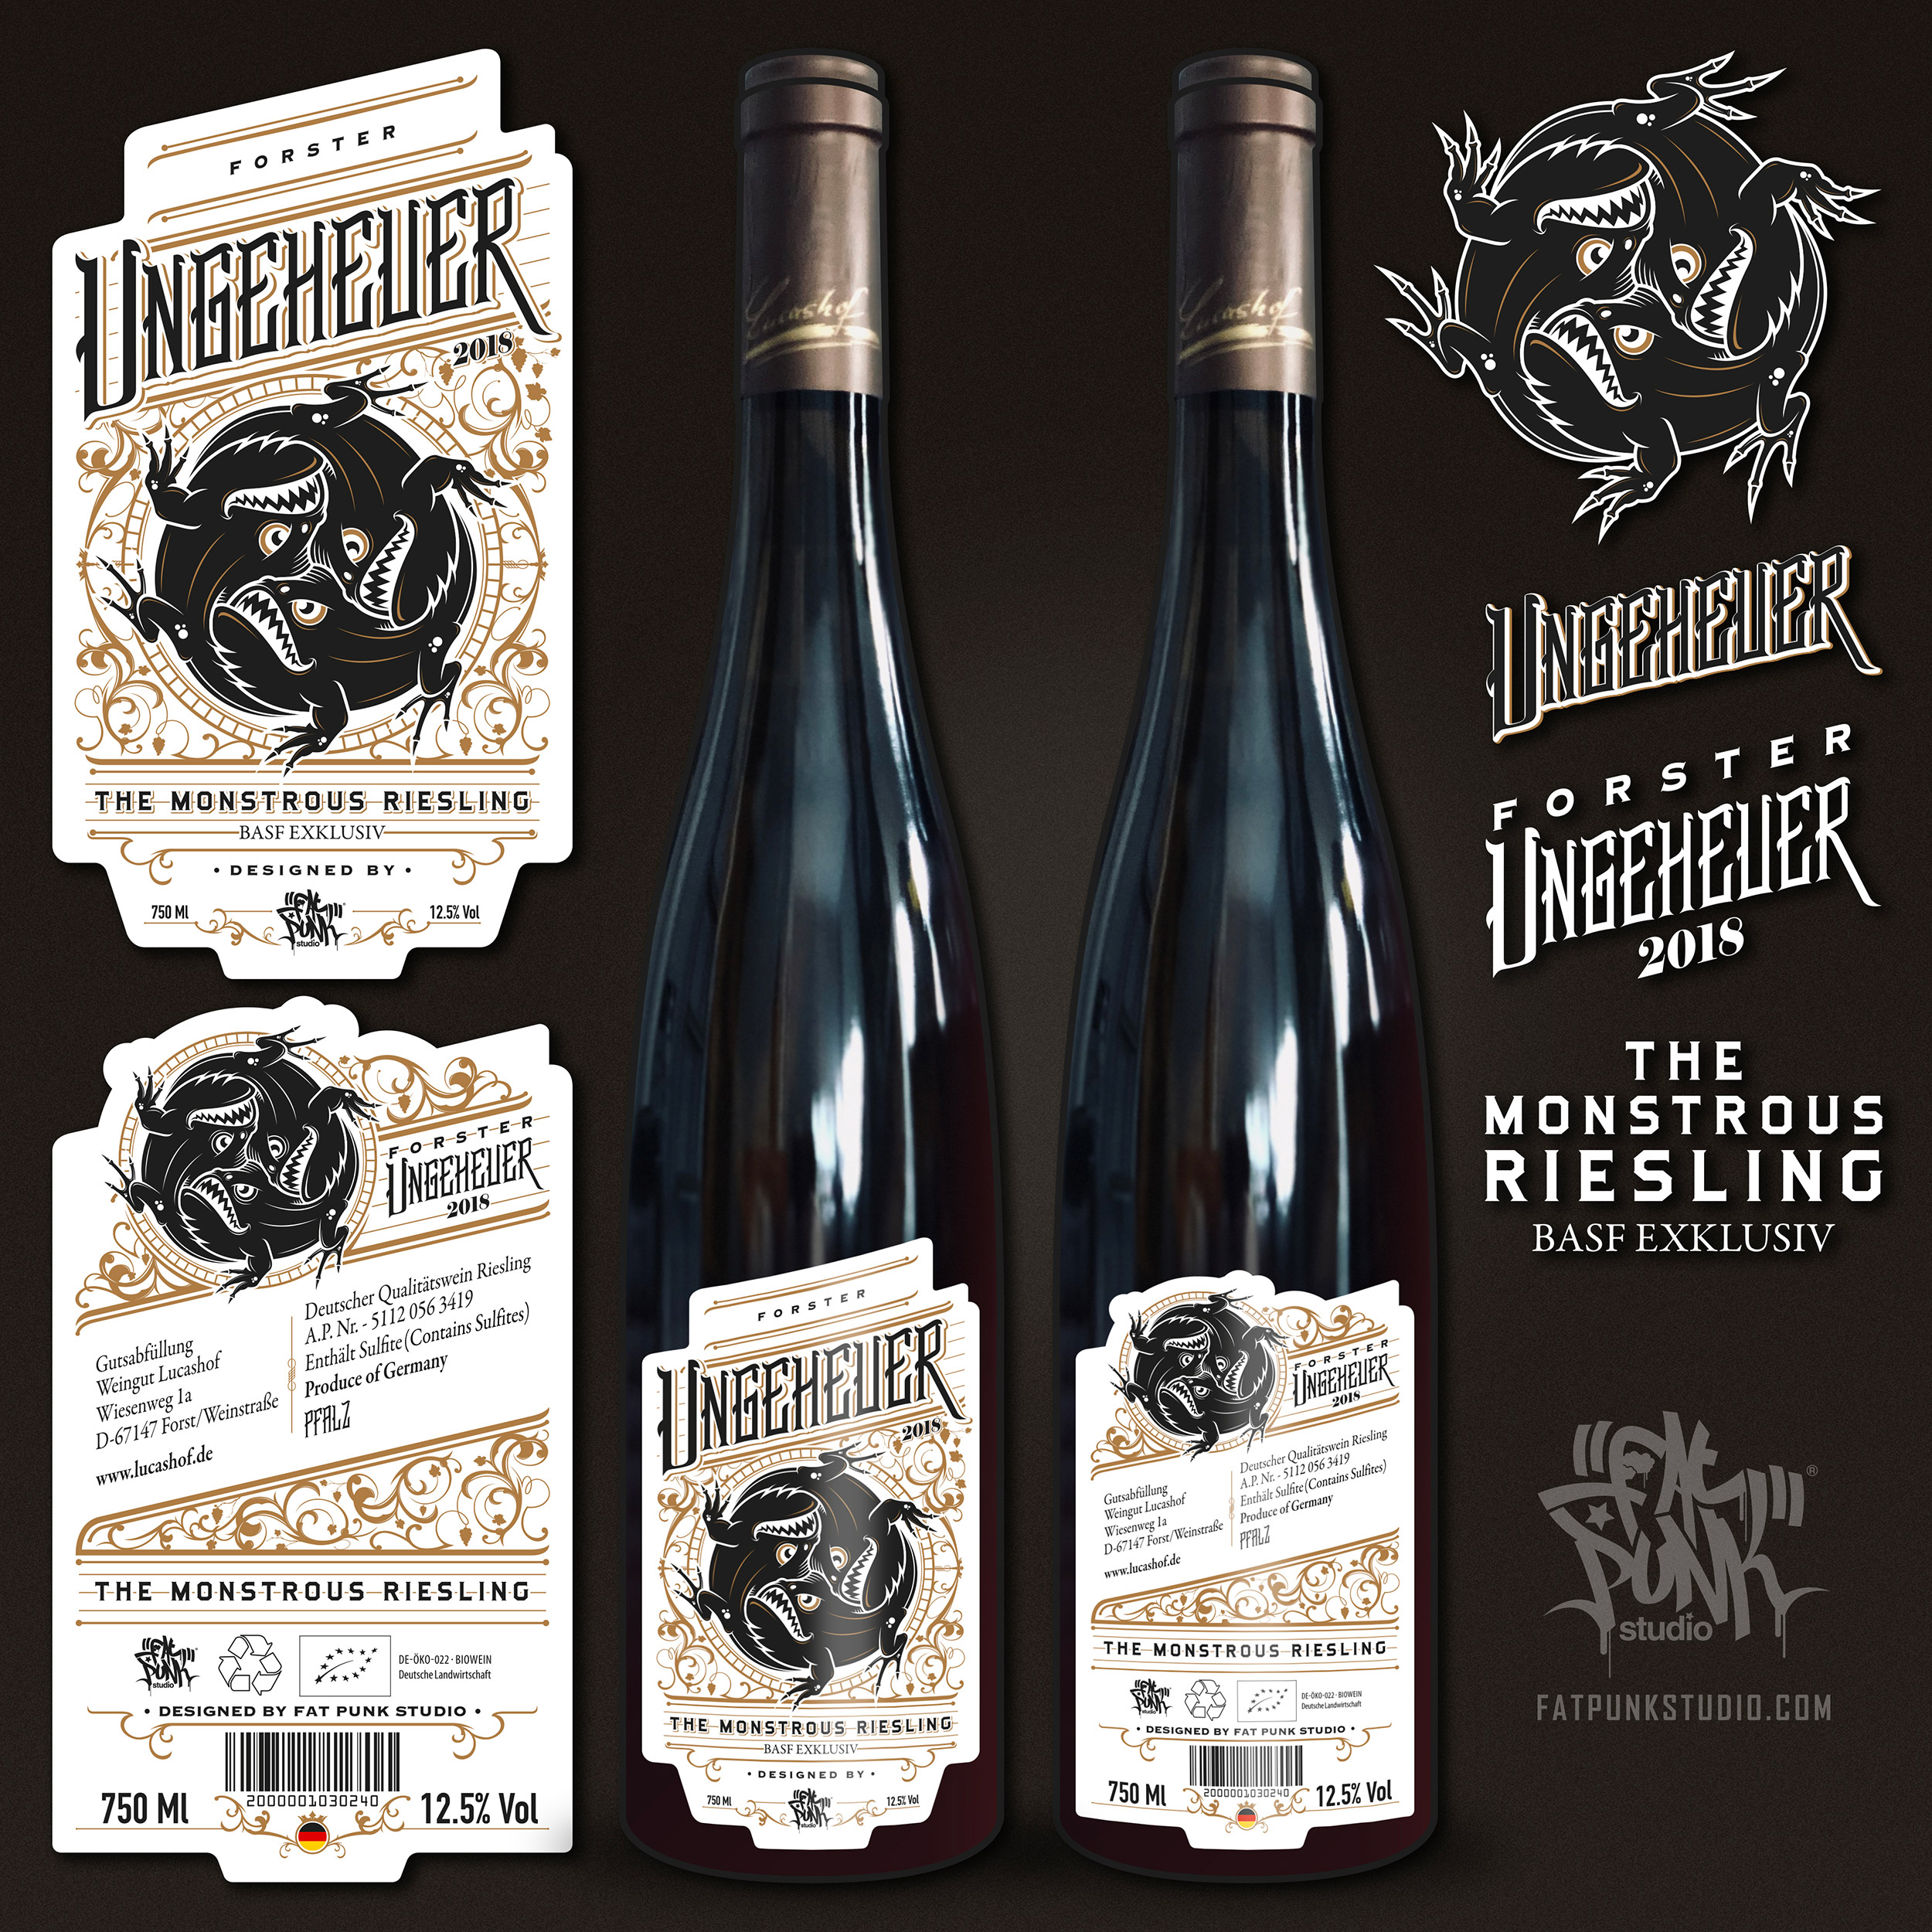 basf-lacashof-forster-ungeheuer-riesling-fat-punk-studio-02